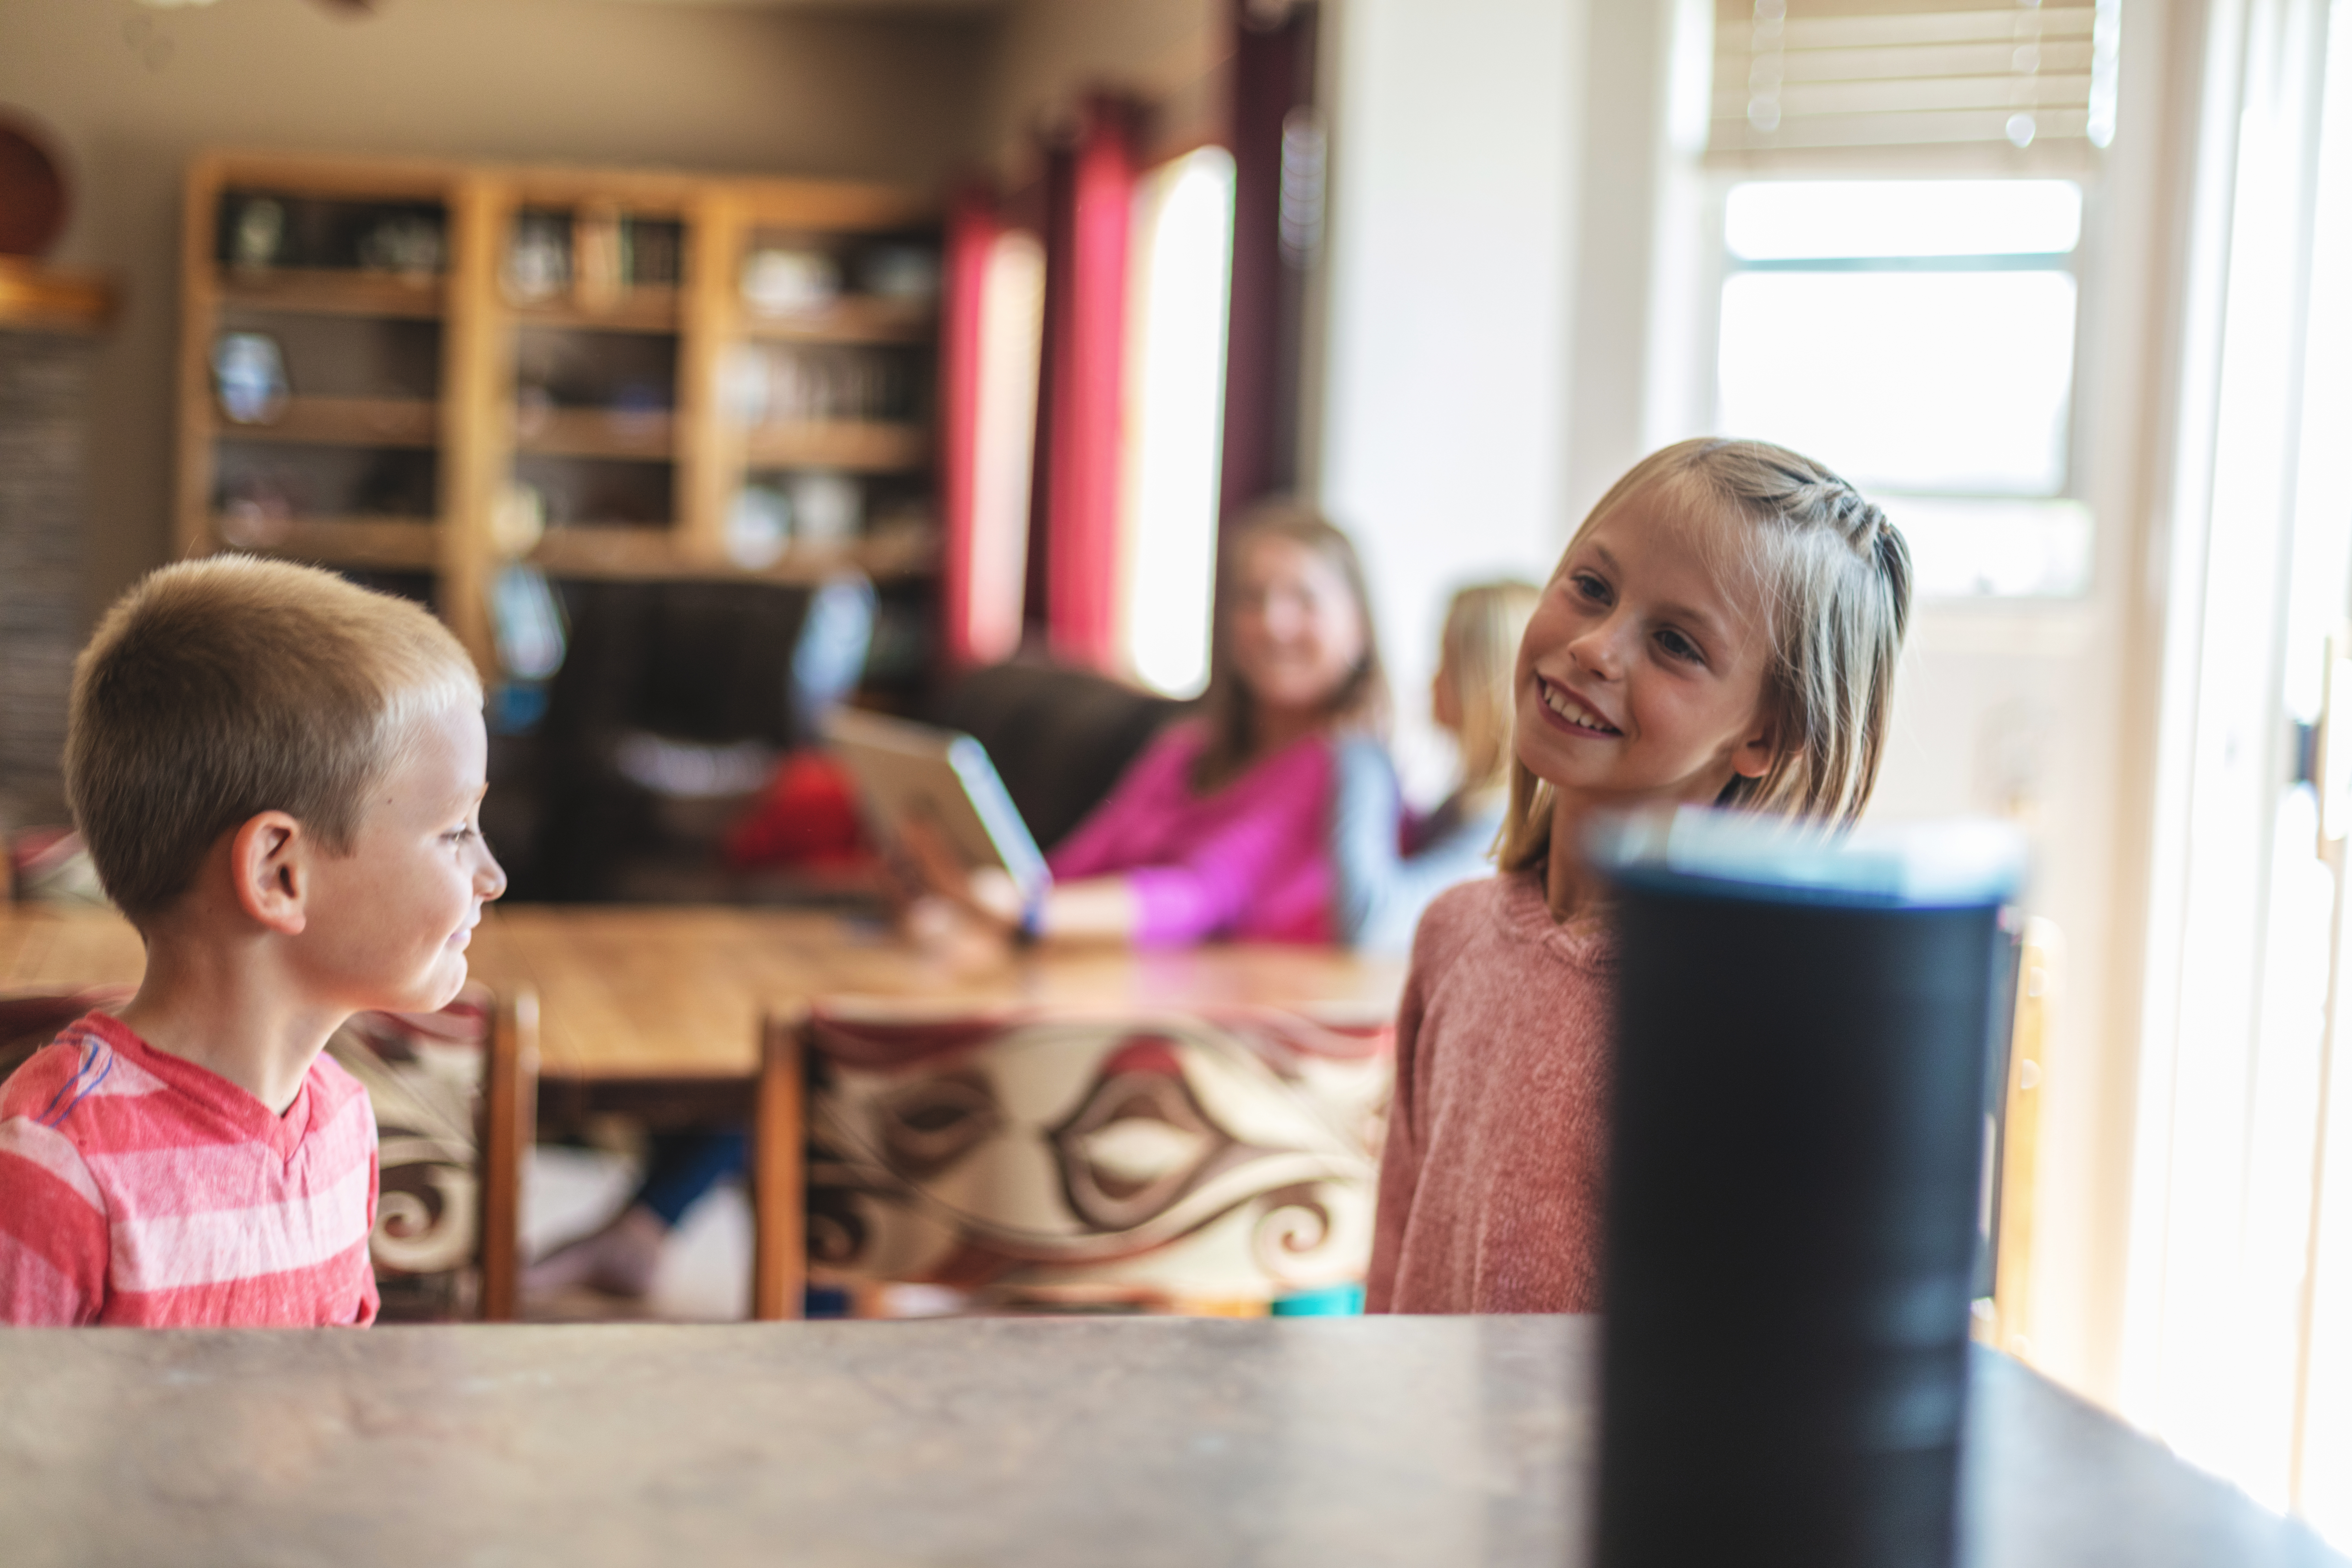 What You Need to Know Before Buying a Smart Speaker for the Family